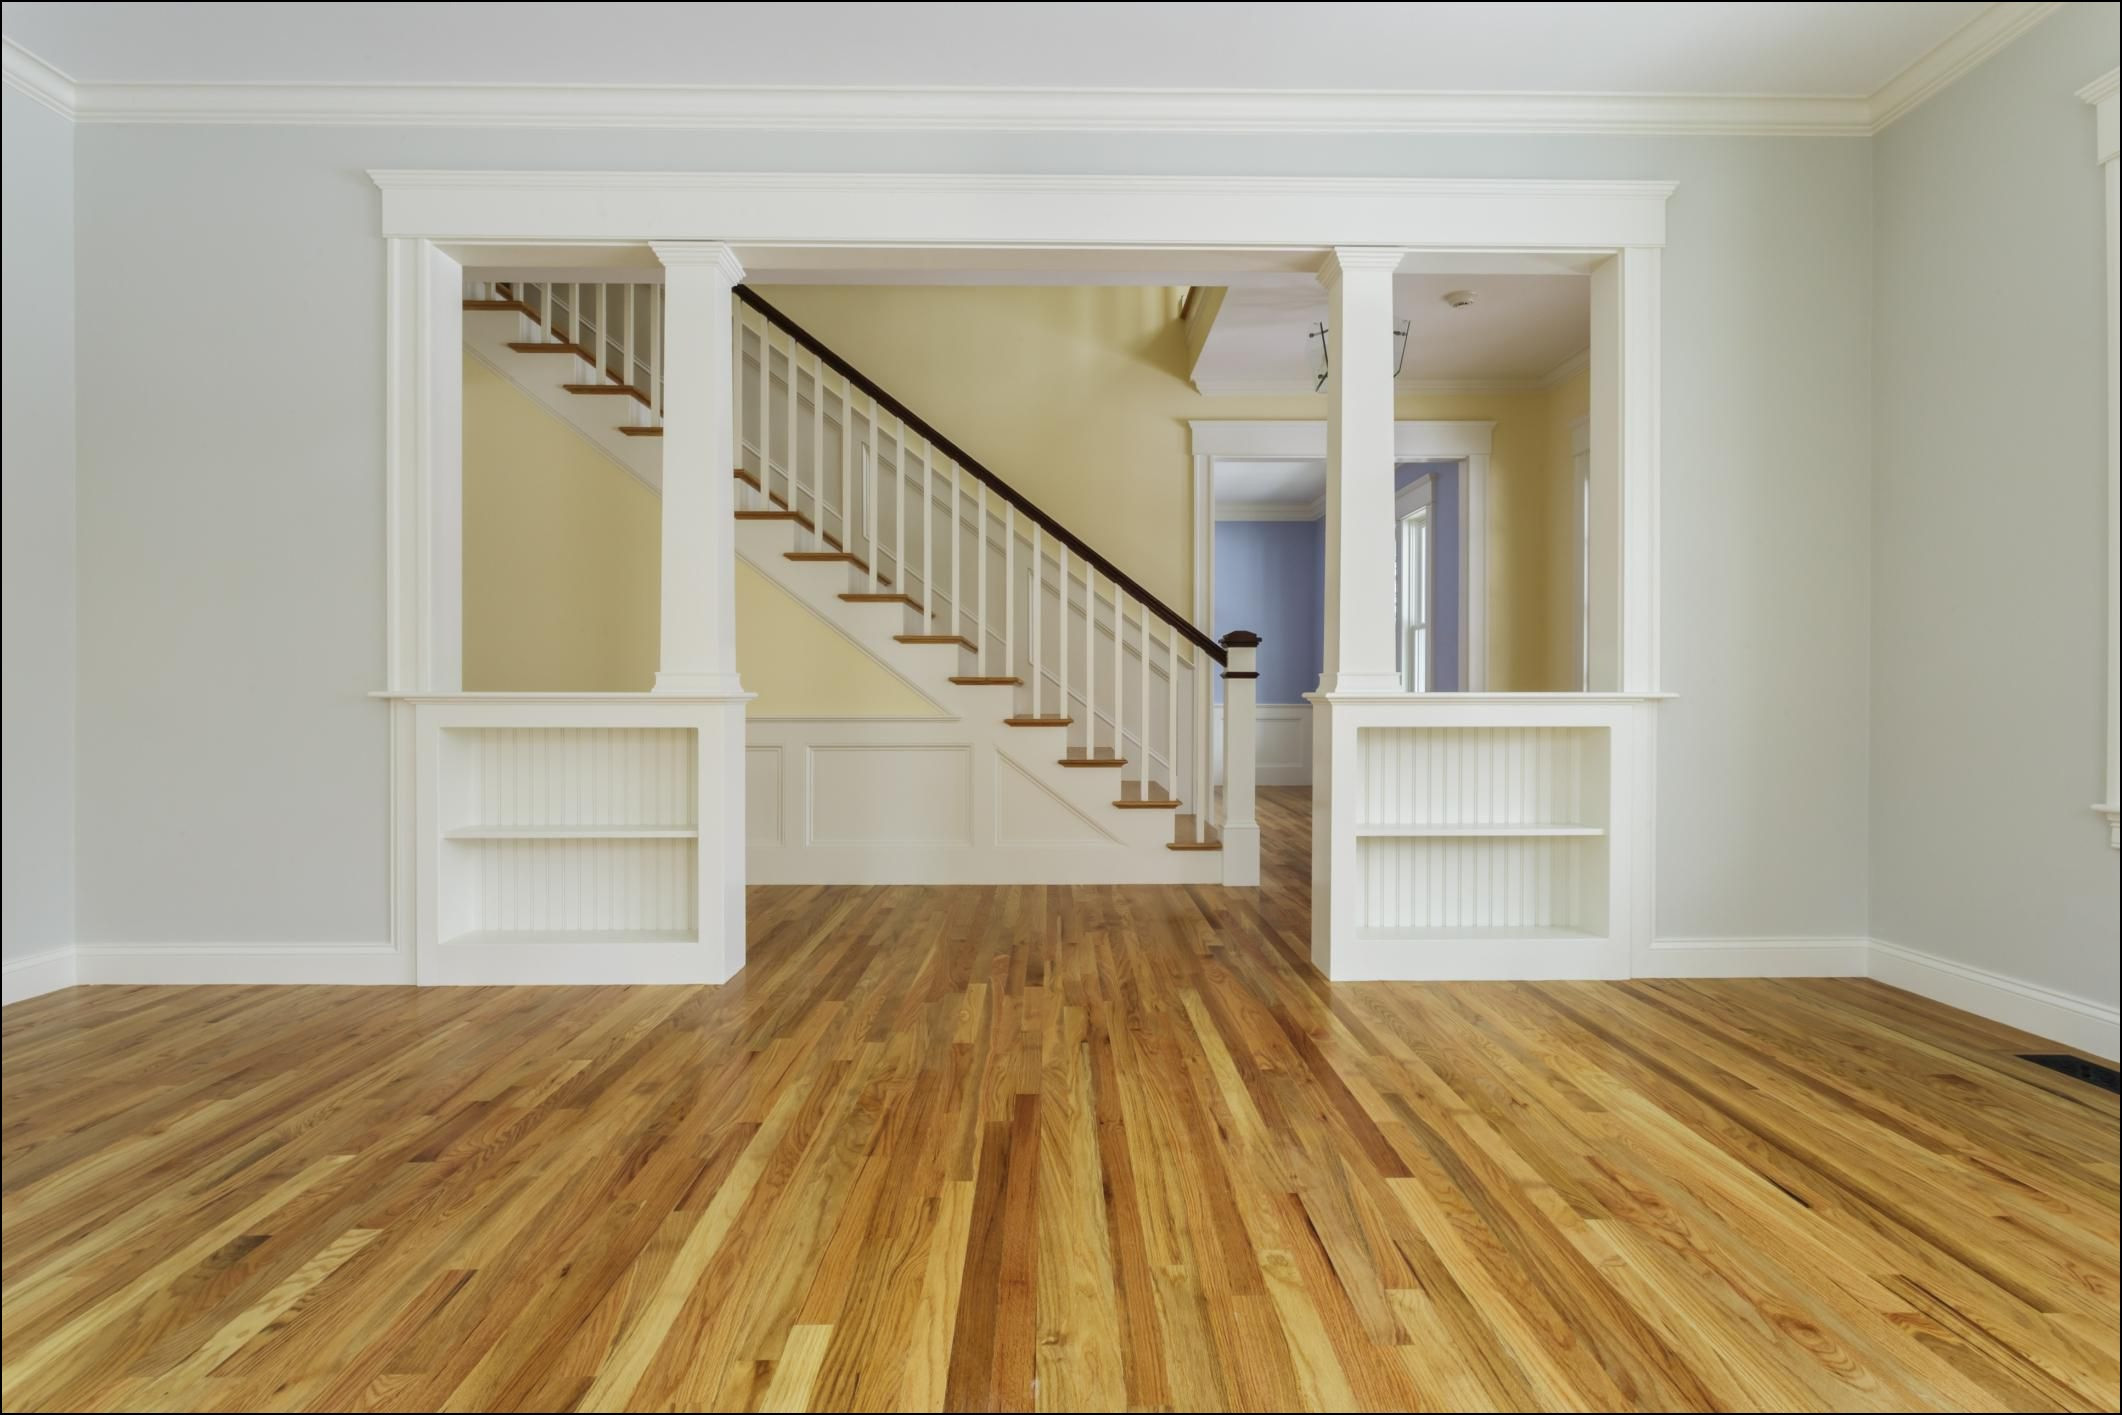 calculate hardwood flooring square footage of hardwood flooring suppliers france flooring ideas inside hardwood flooring cost for 1000 square feet stock guide to solid hardwood floors of hardwood flooring